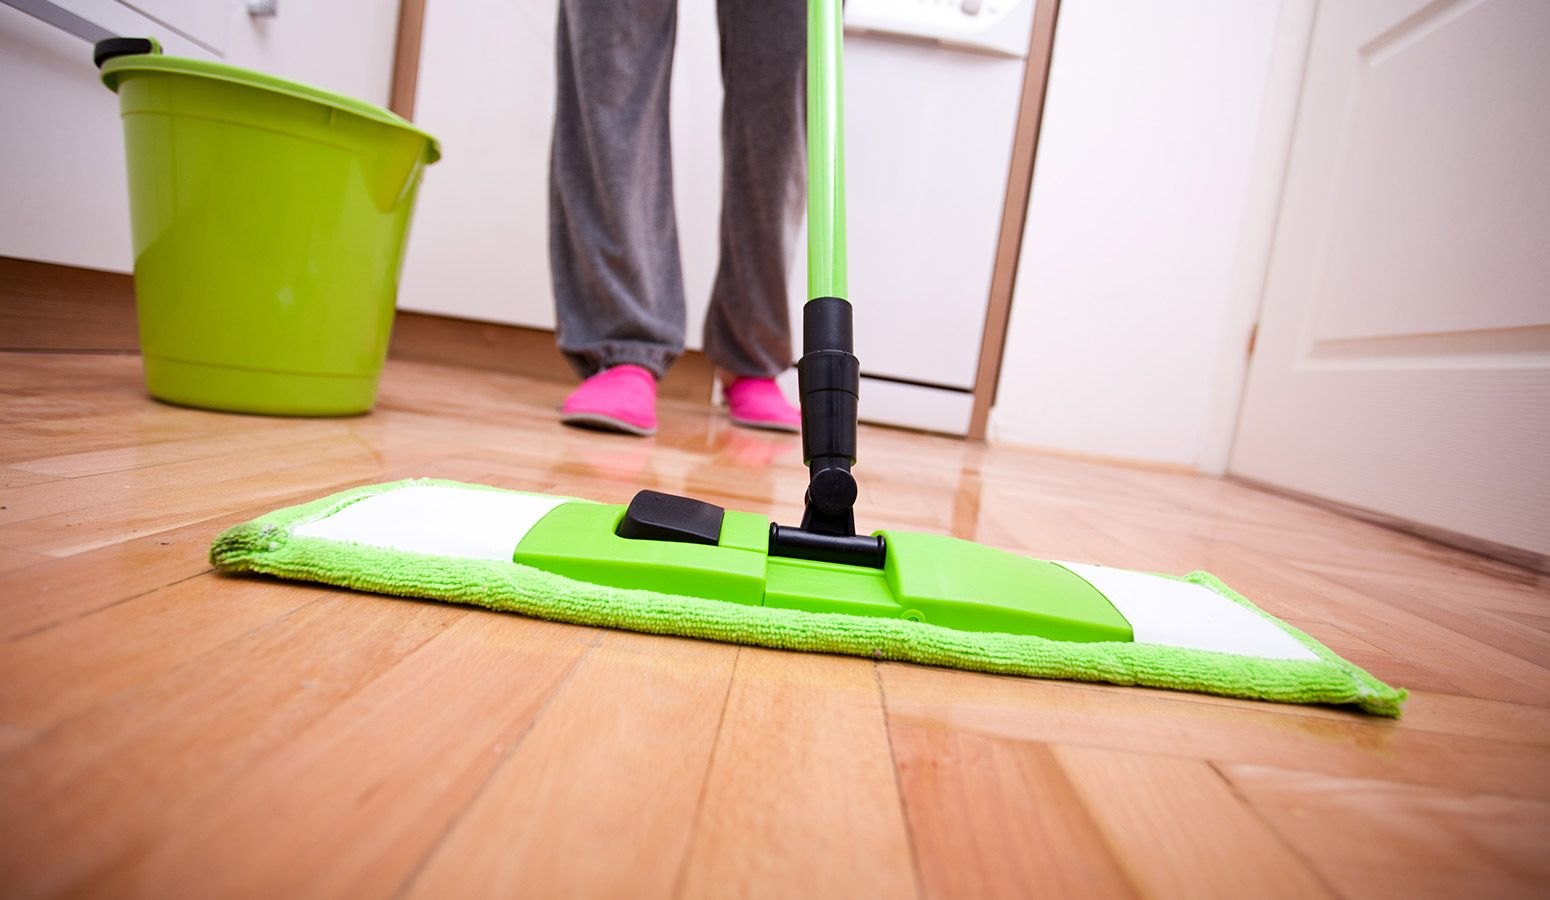 Home Cleaning has great benefits for every household   Home ...